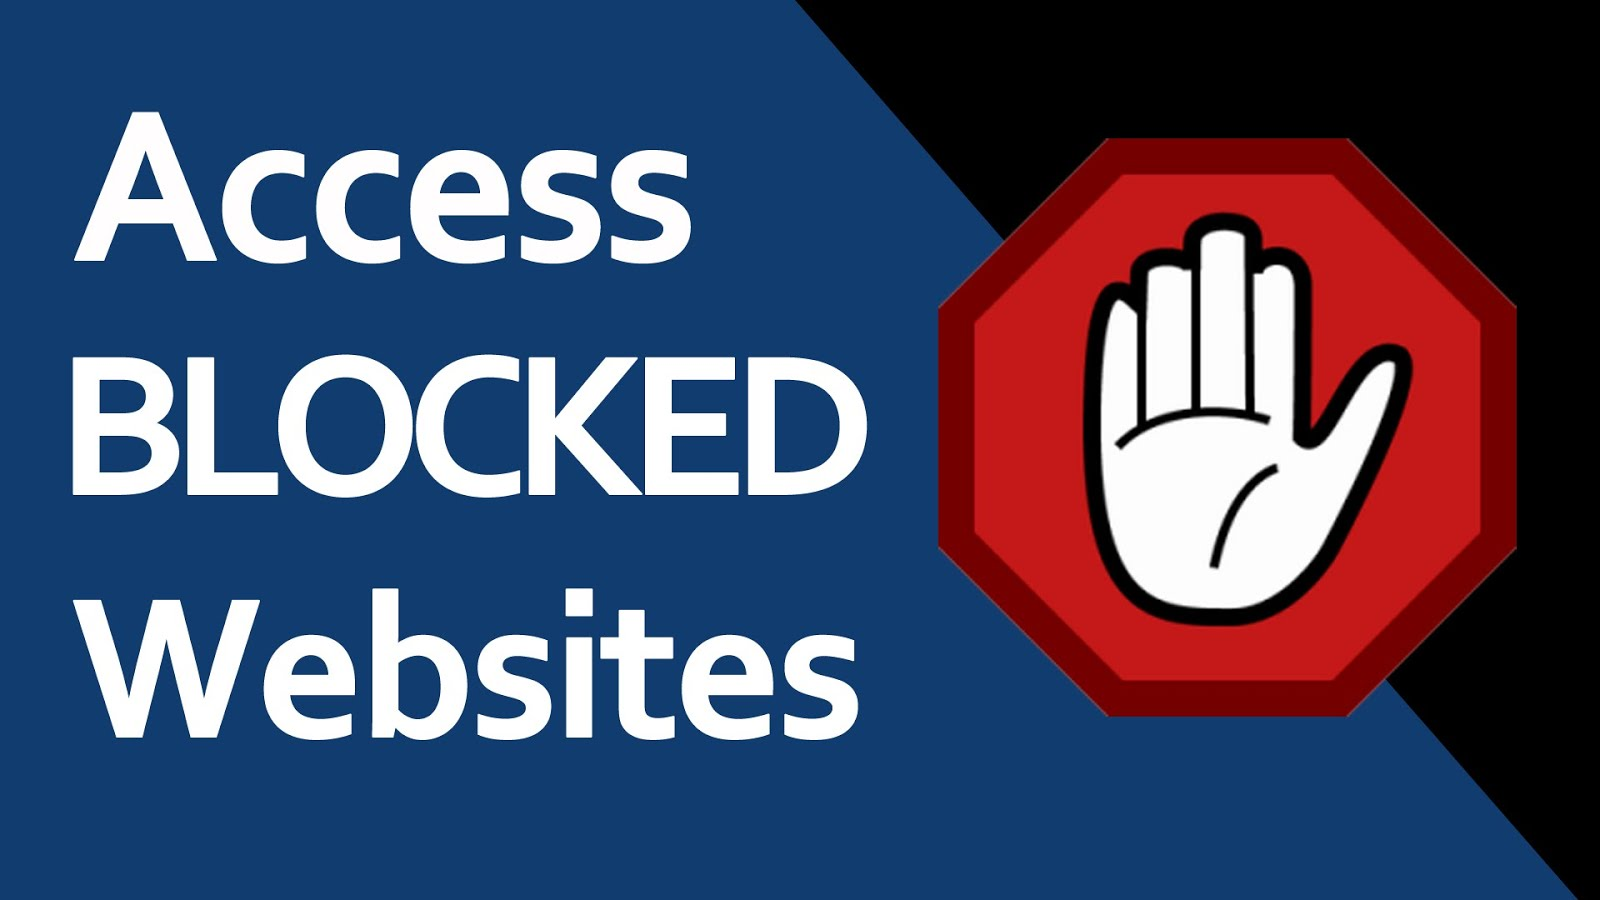 How to access blocked websites ghanavers website we wish to visit is blocked by a software or by our isp internet service provider so the question arises how can we access blocked websites ccuart Choice Image